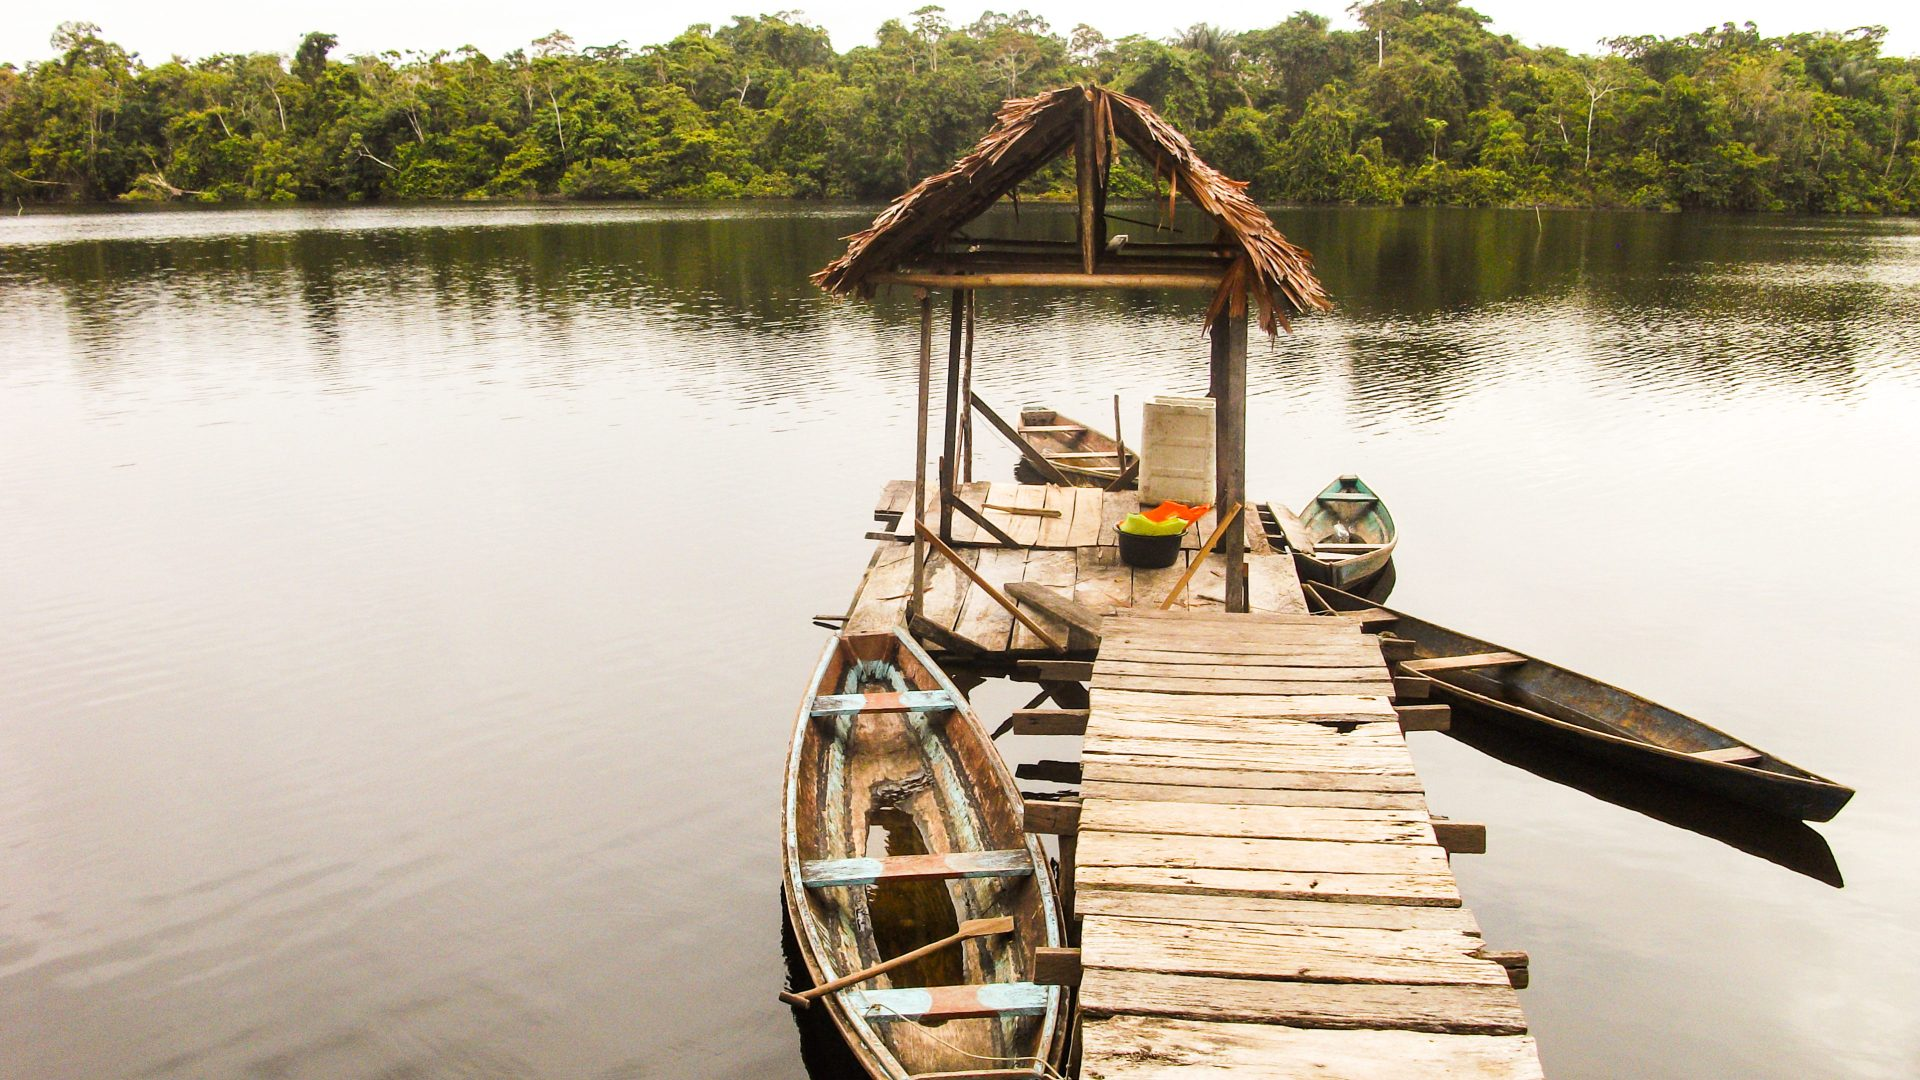 A wooden pier leads out to small wooden canoes in the Amazon jungle.